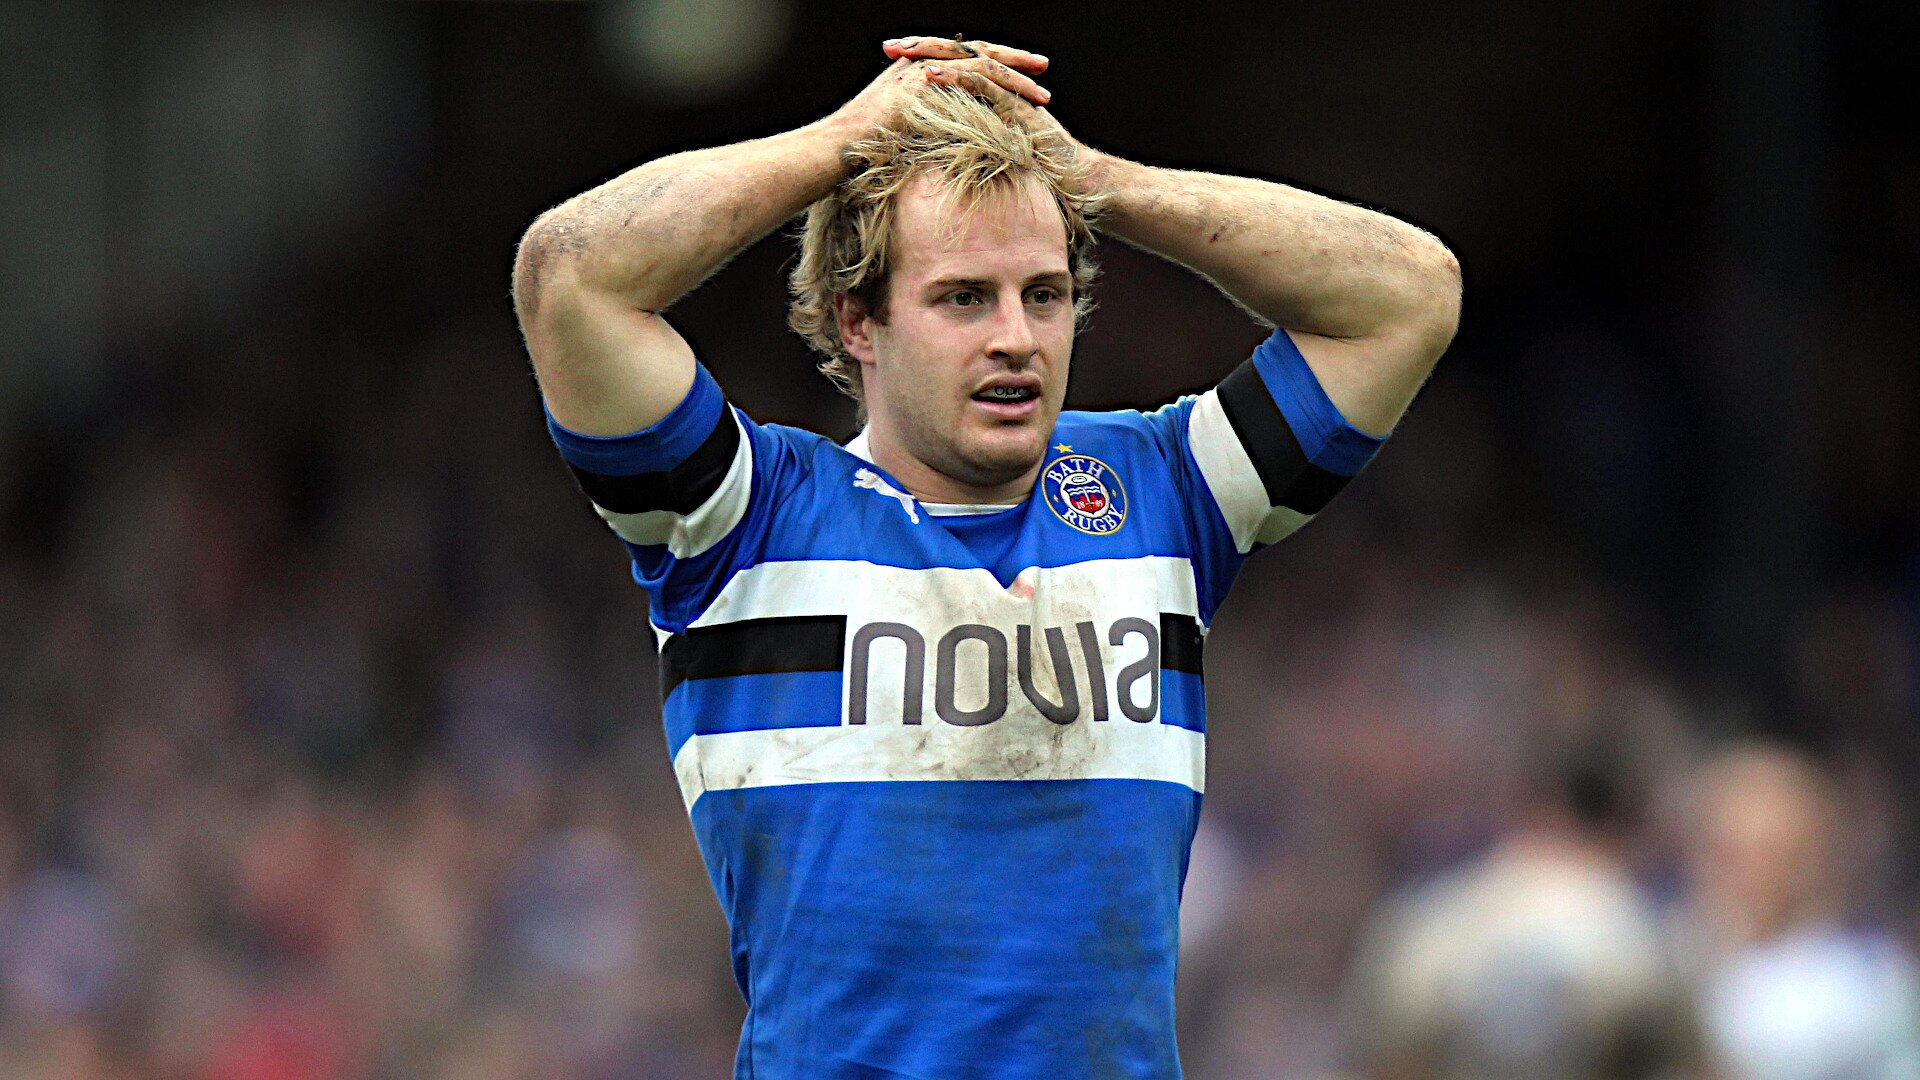 The 2 Premiership clubs Abendanon snubbed to stay in France